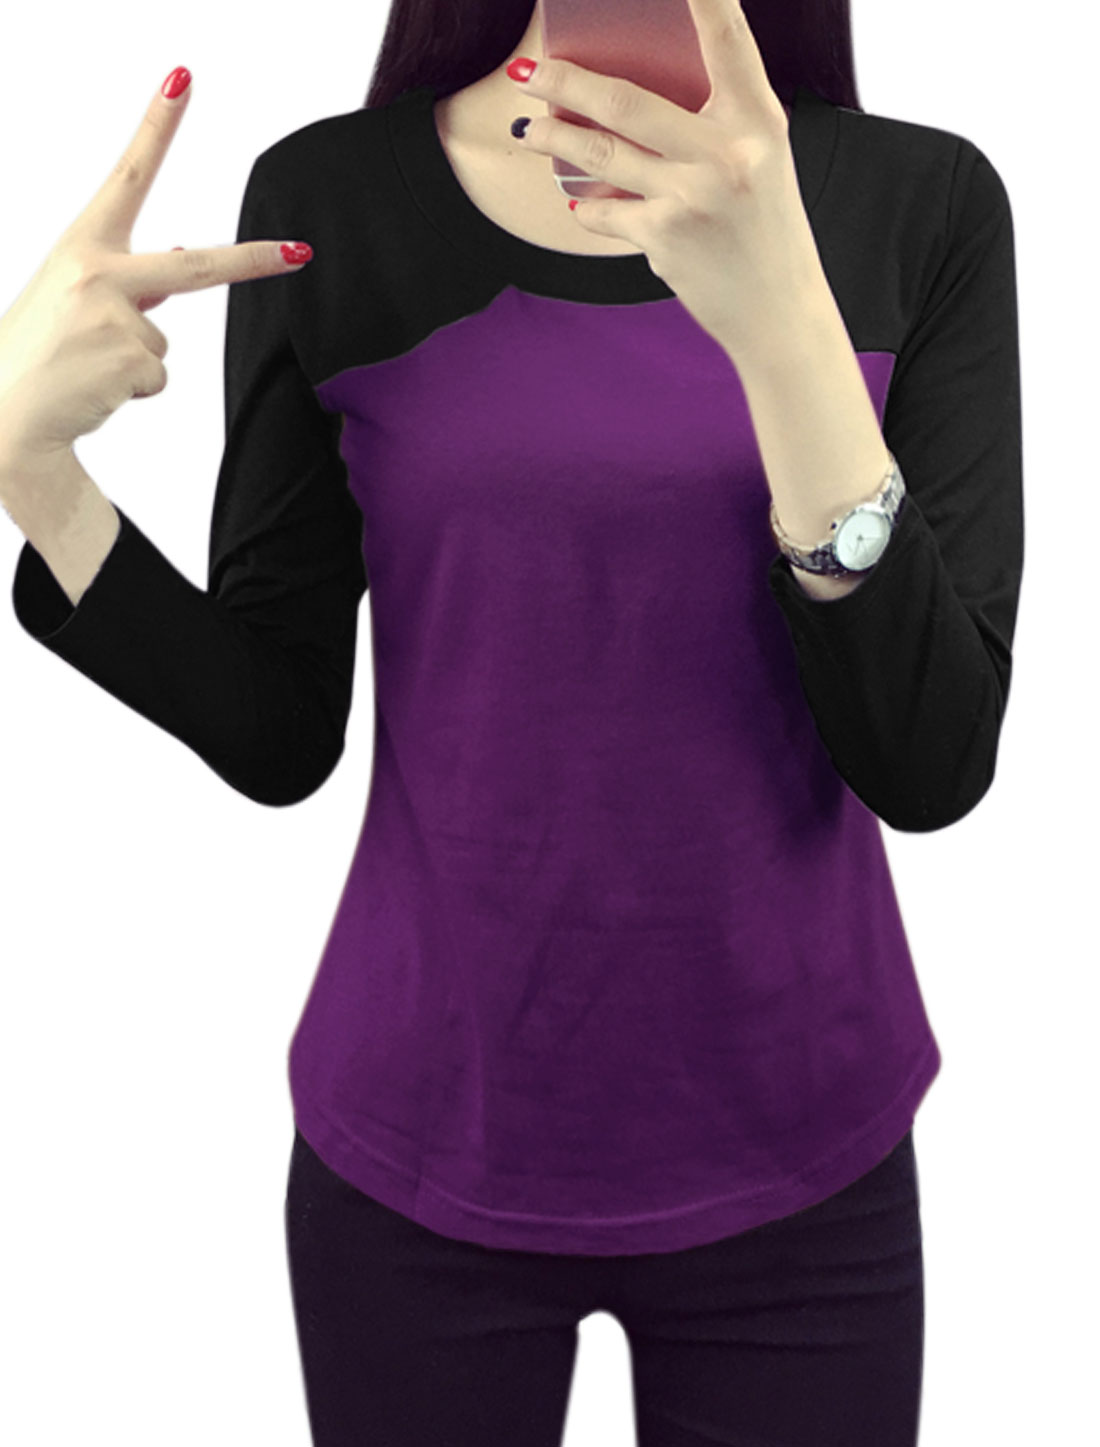 Ladies Round Neck Color Block Slim Fit Tee Shirt Purple M